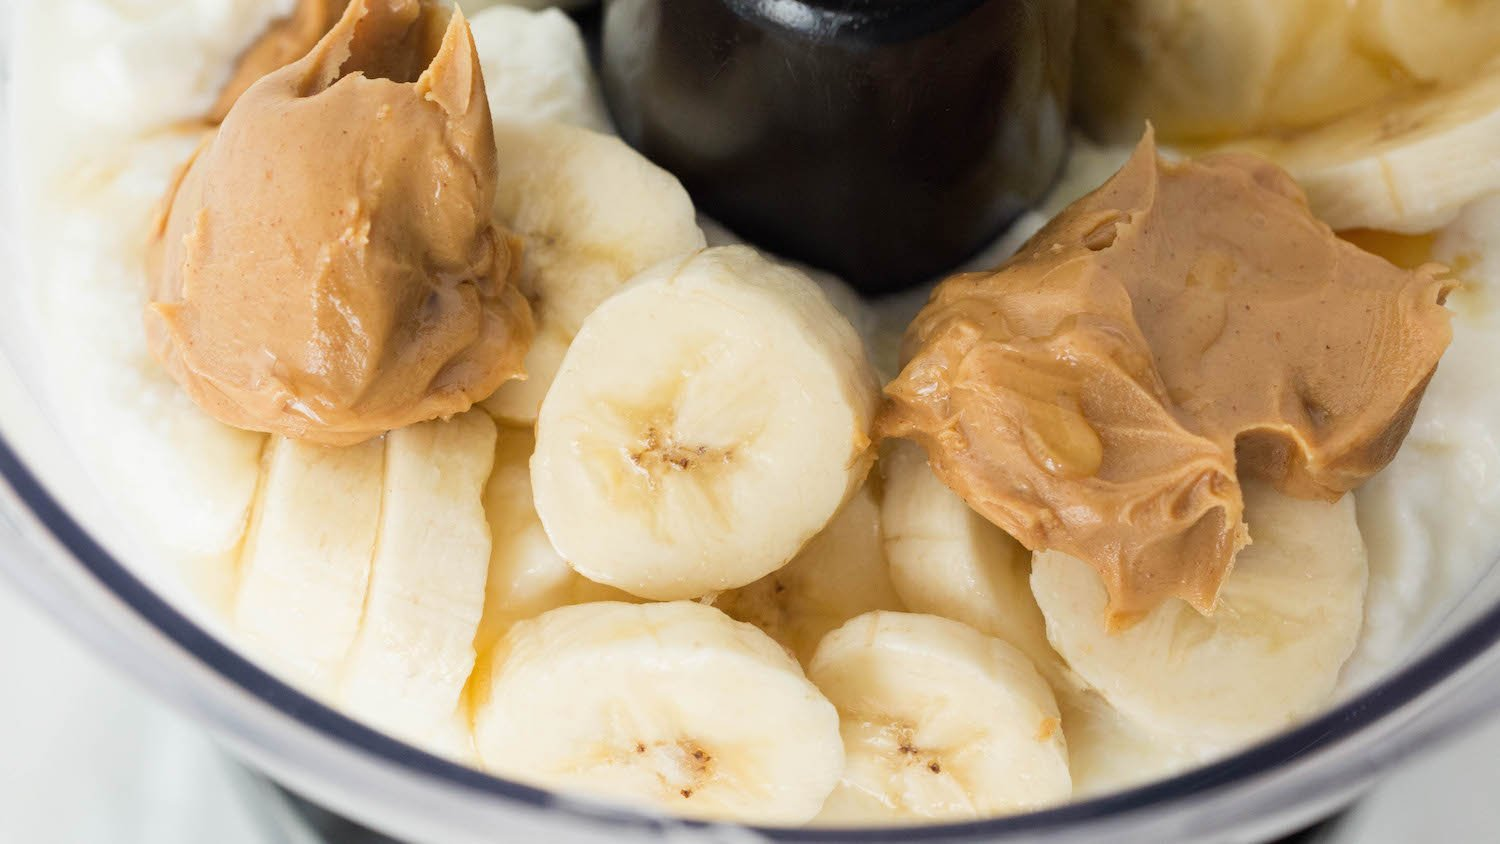 Blend all the ingredients together to make yogurt peanut butter banana dog treats.